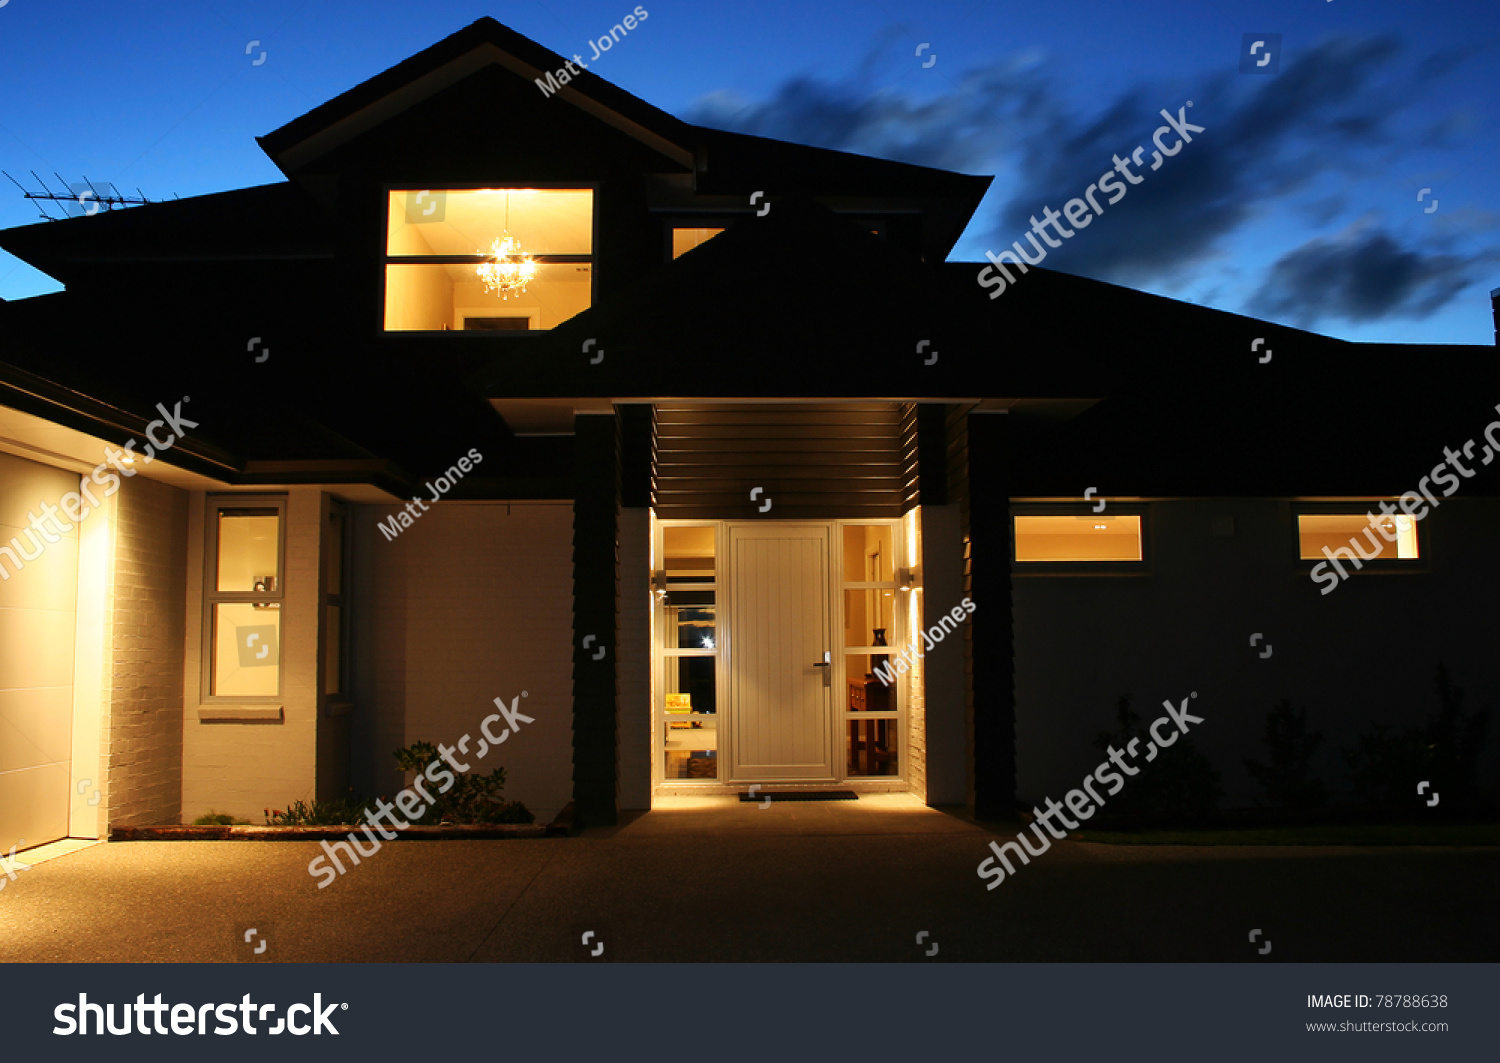 A modern house front entrance at night stock photo for Modern house at night